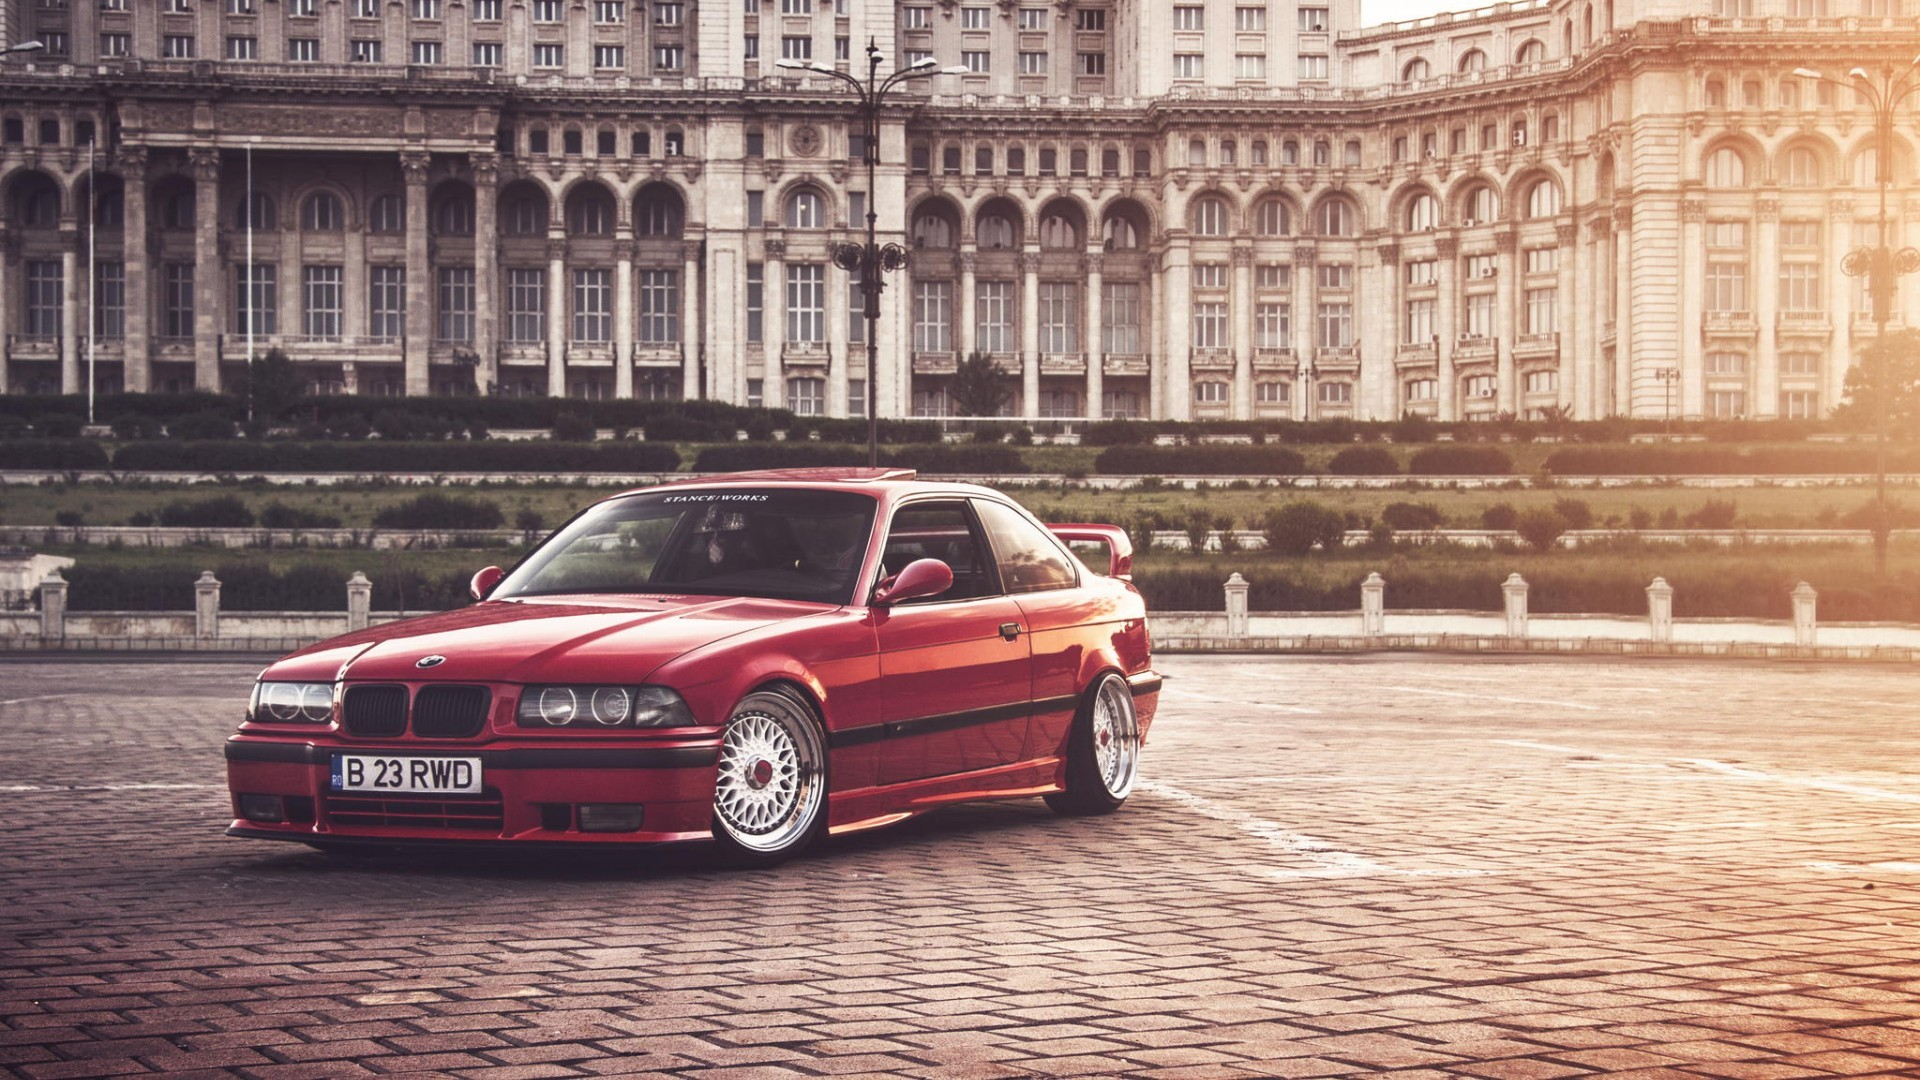 Bmw Wallpaper Hd 2560x1440 Bucharest Bmw E36 Stance Wallpapers Hd Desktop And